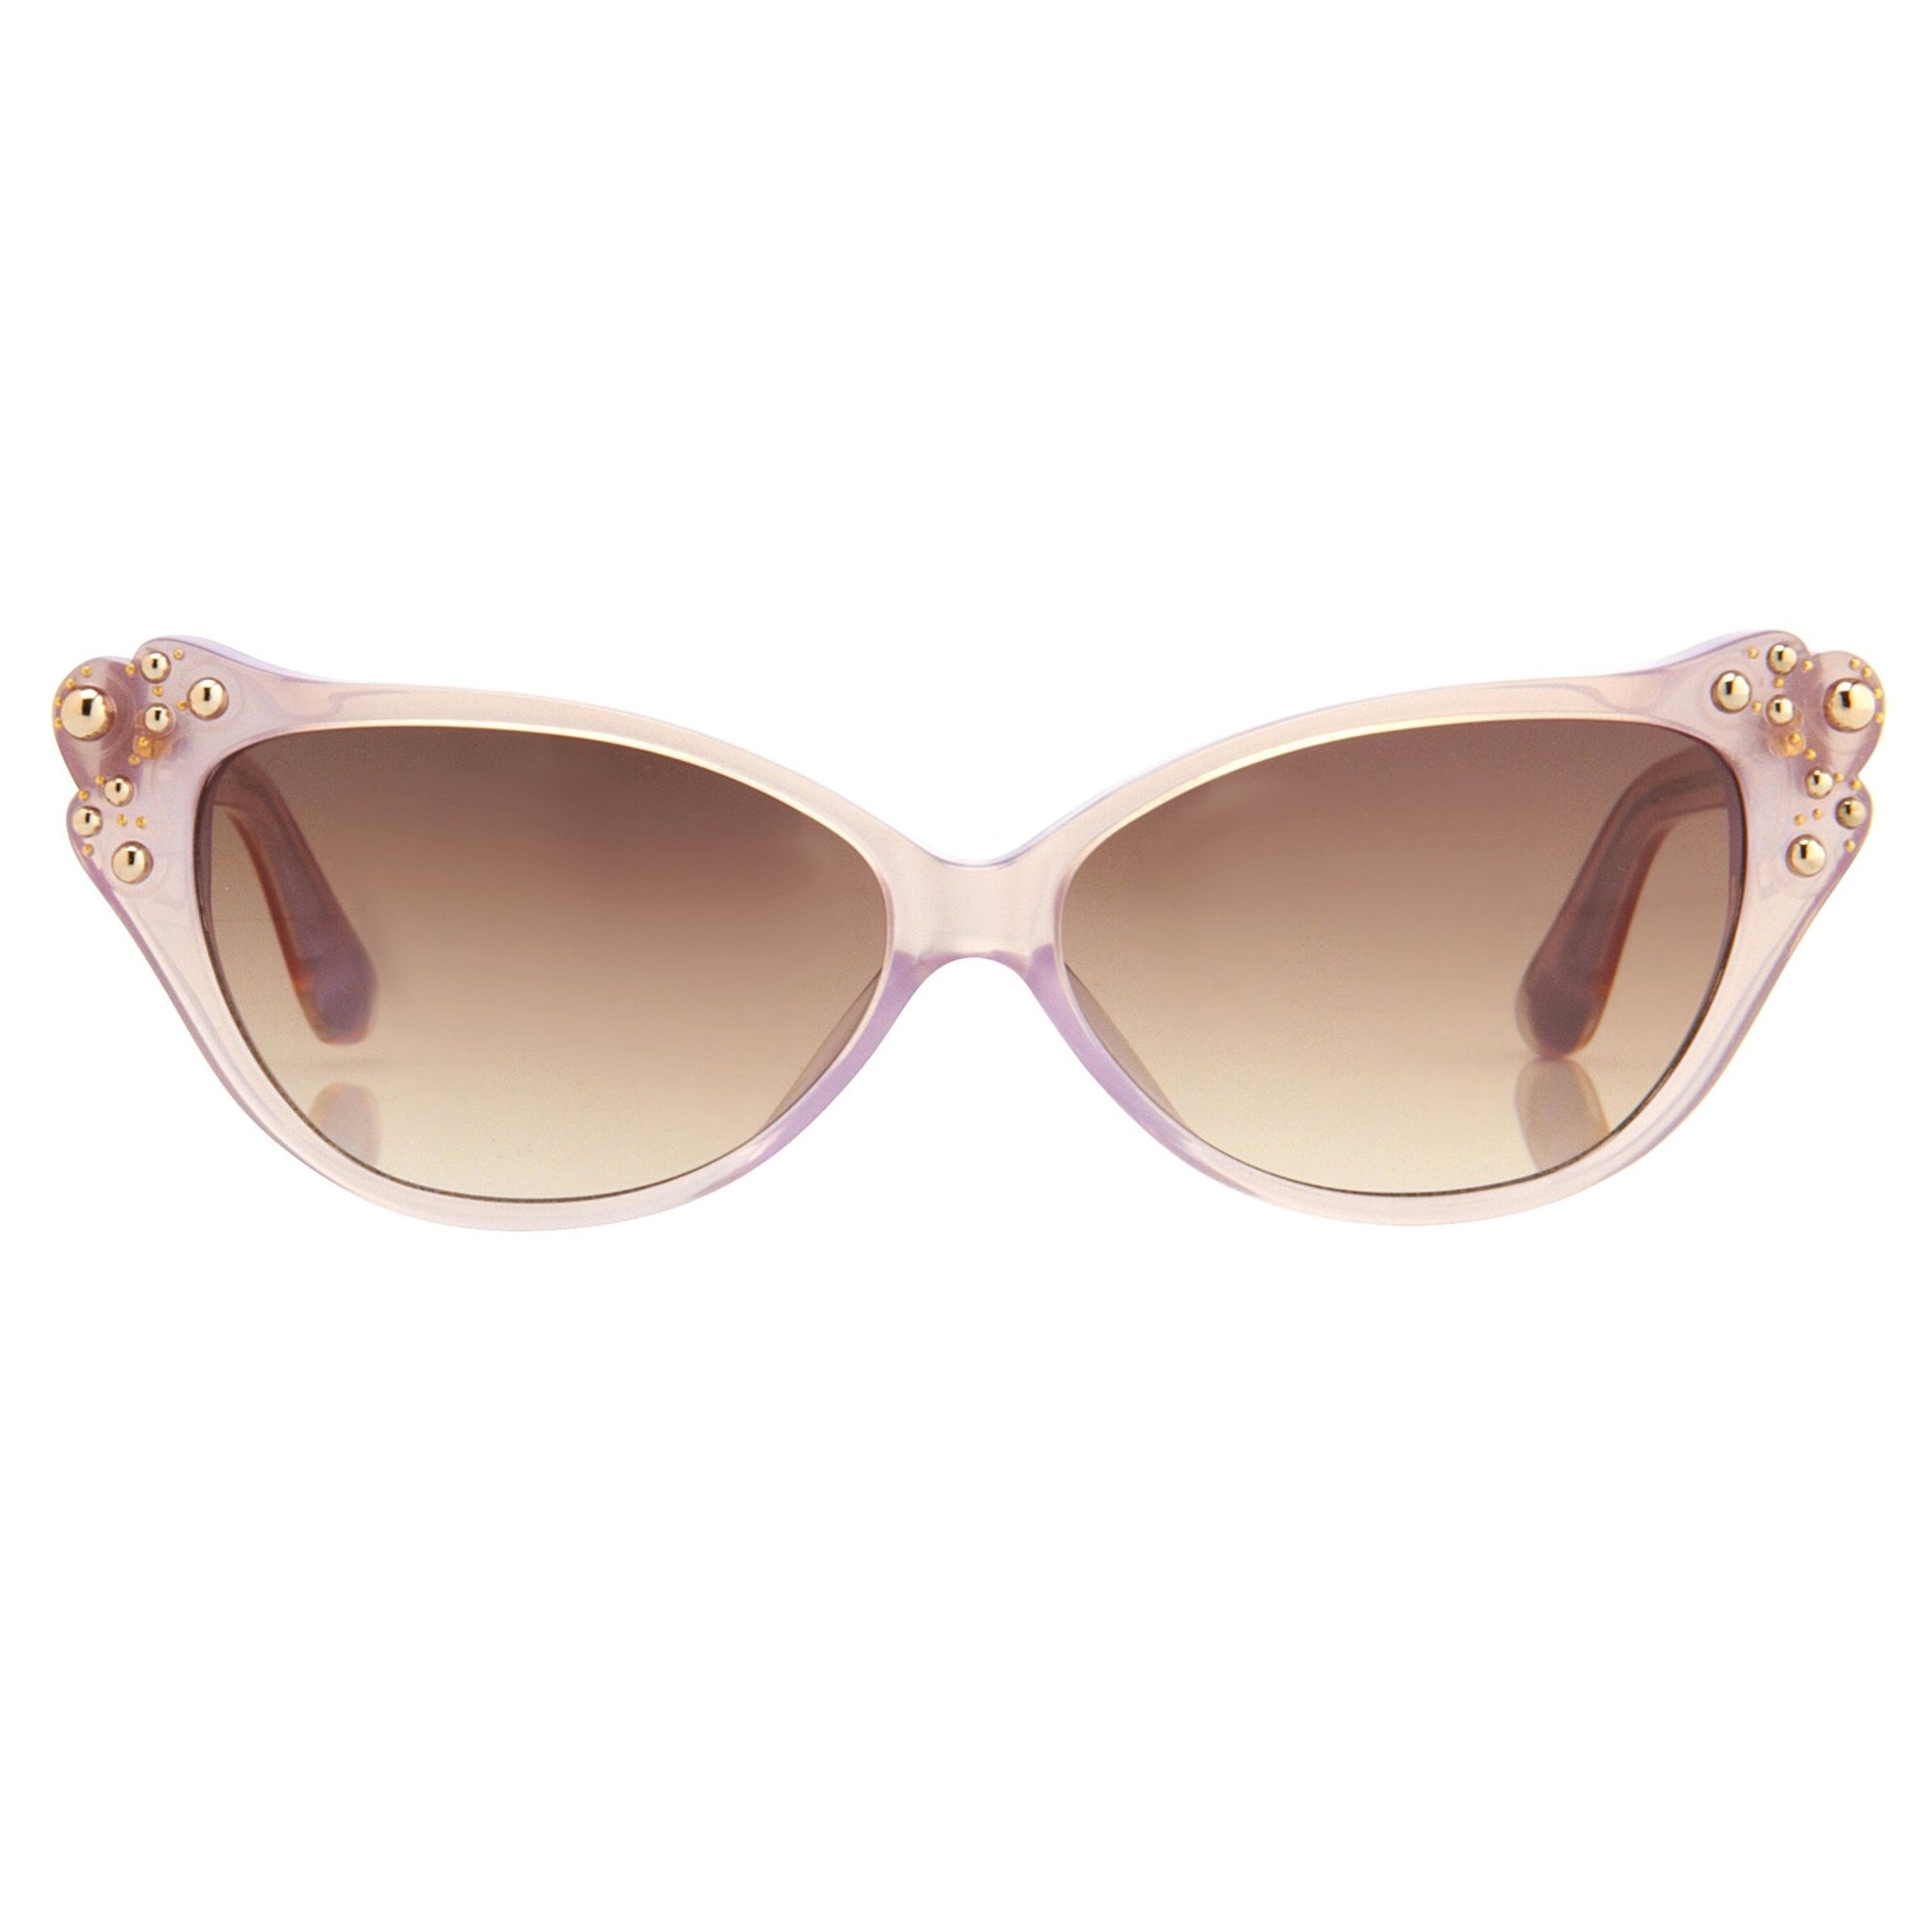 Agent Provocateur Sunglasses Cat Eye Beige and Brown - Watches & Crystals